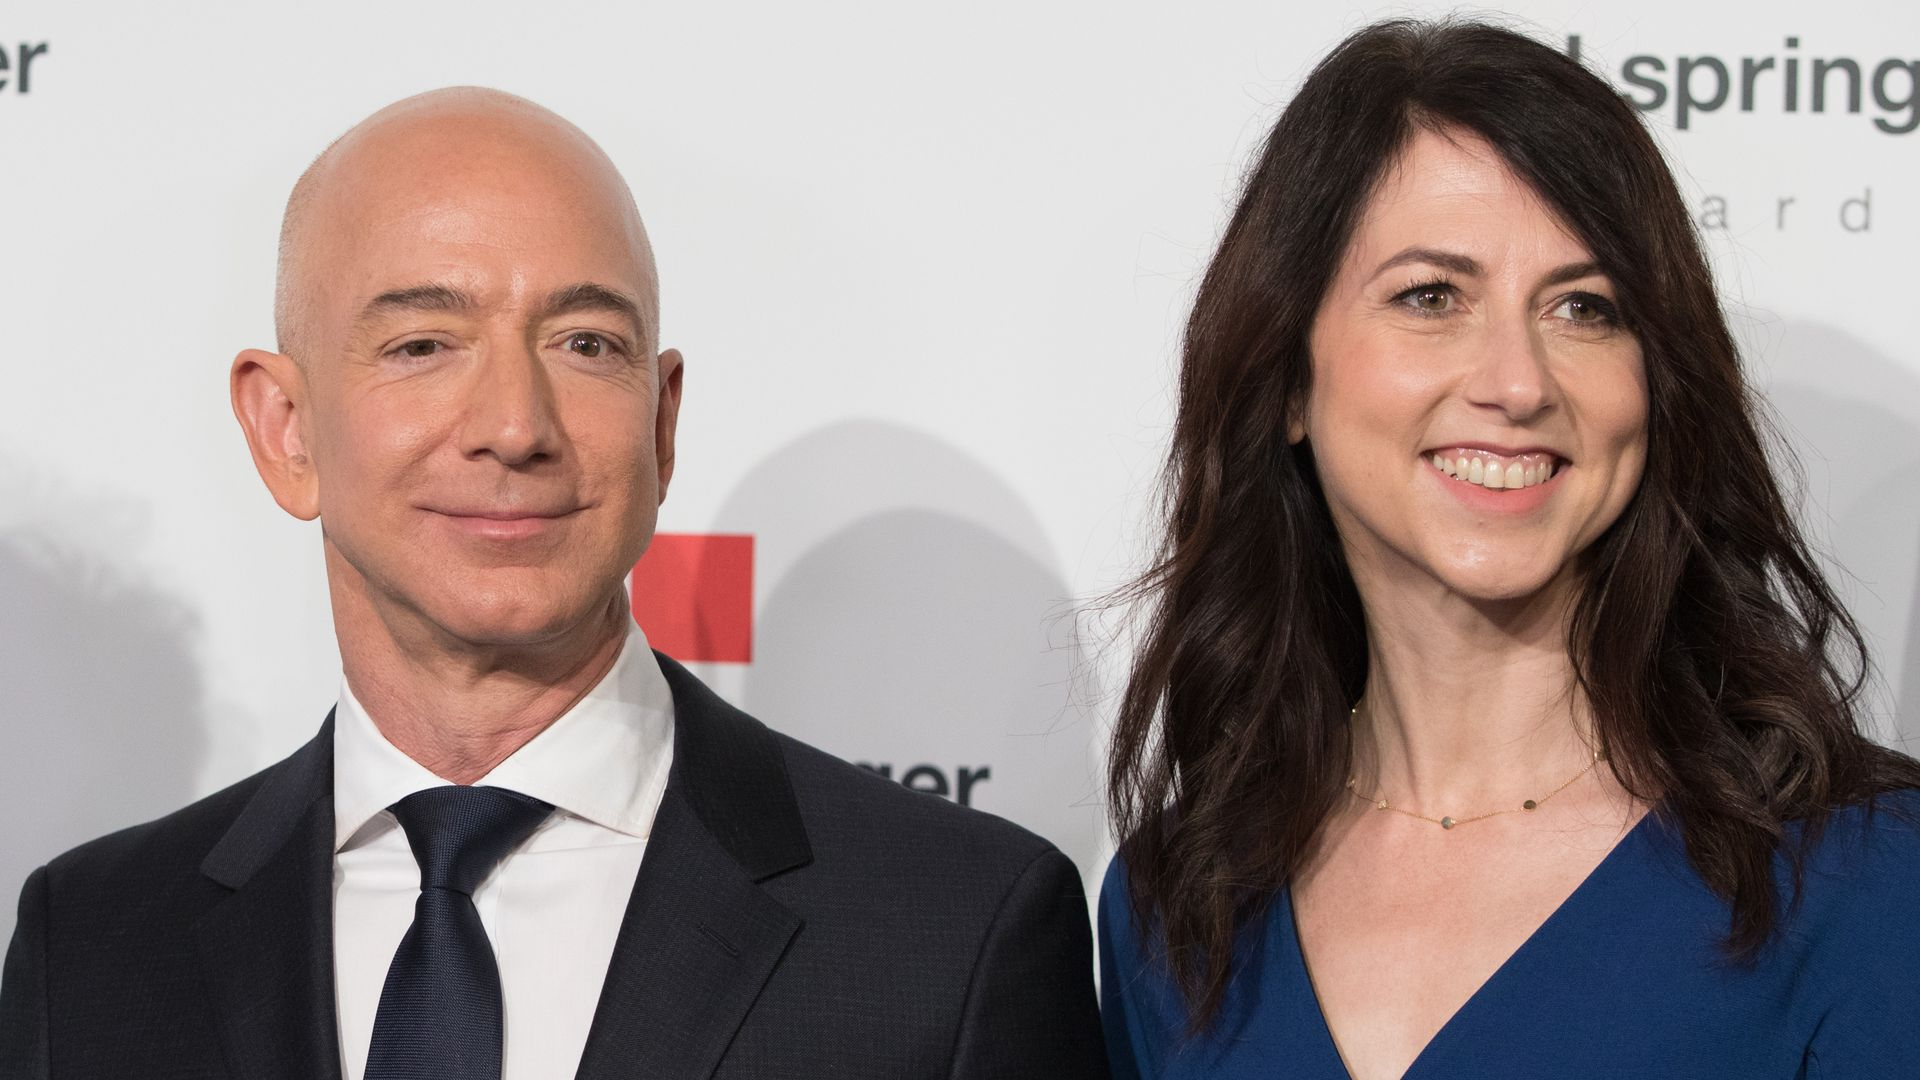 Amazon Jeff Bezos and his wife MacKenzie Bezos